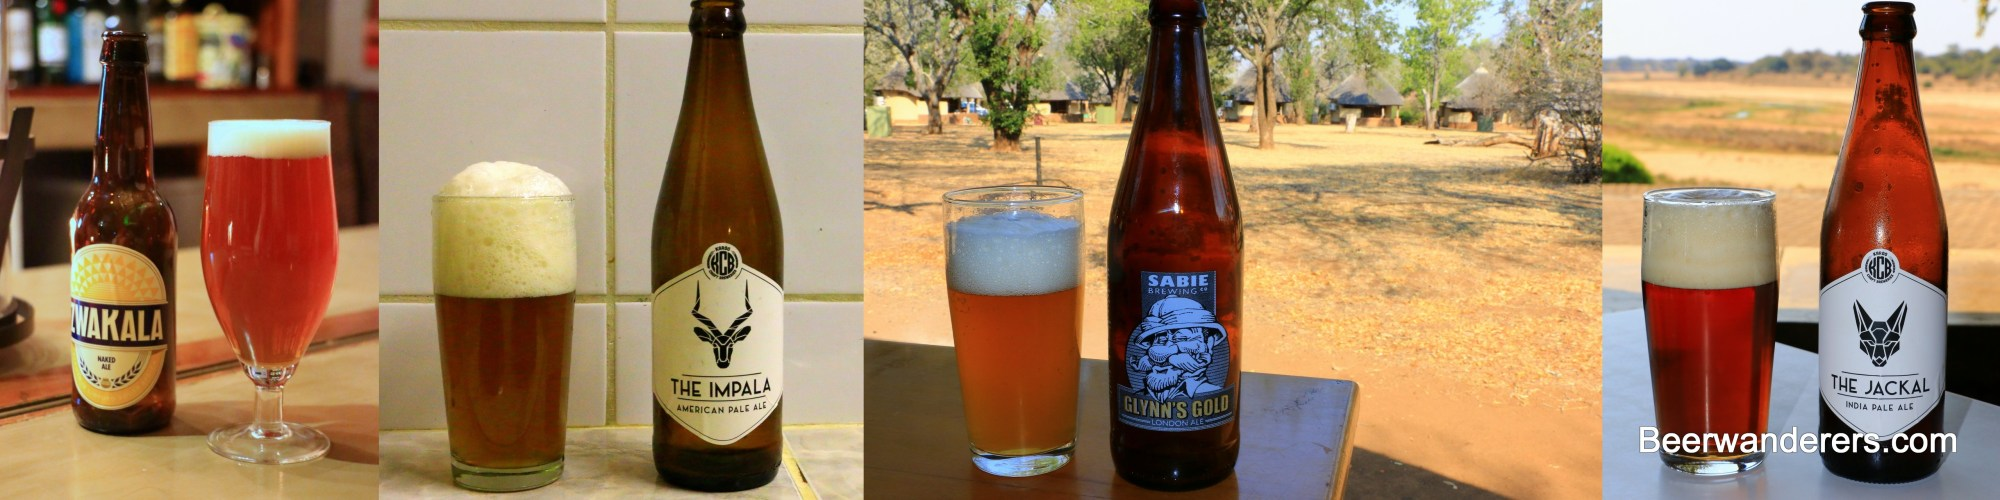 South African craft beer collage